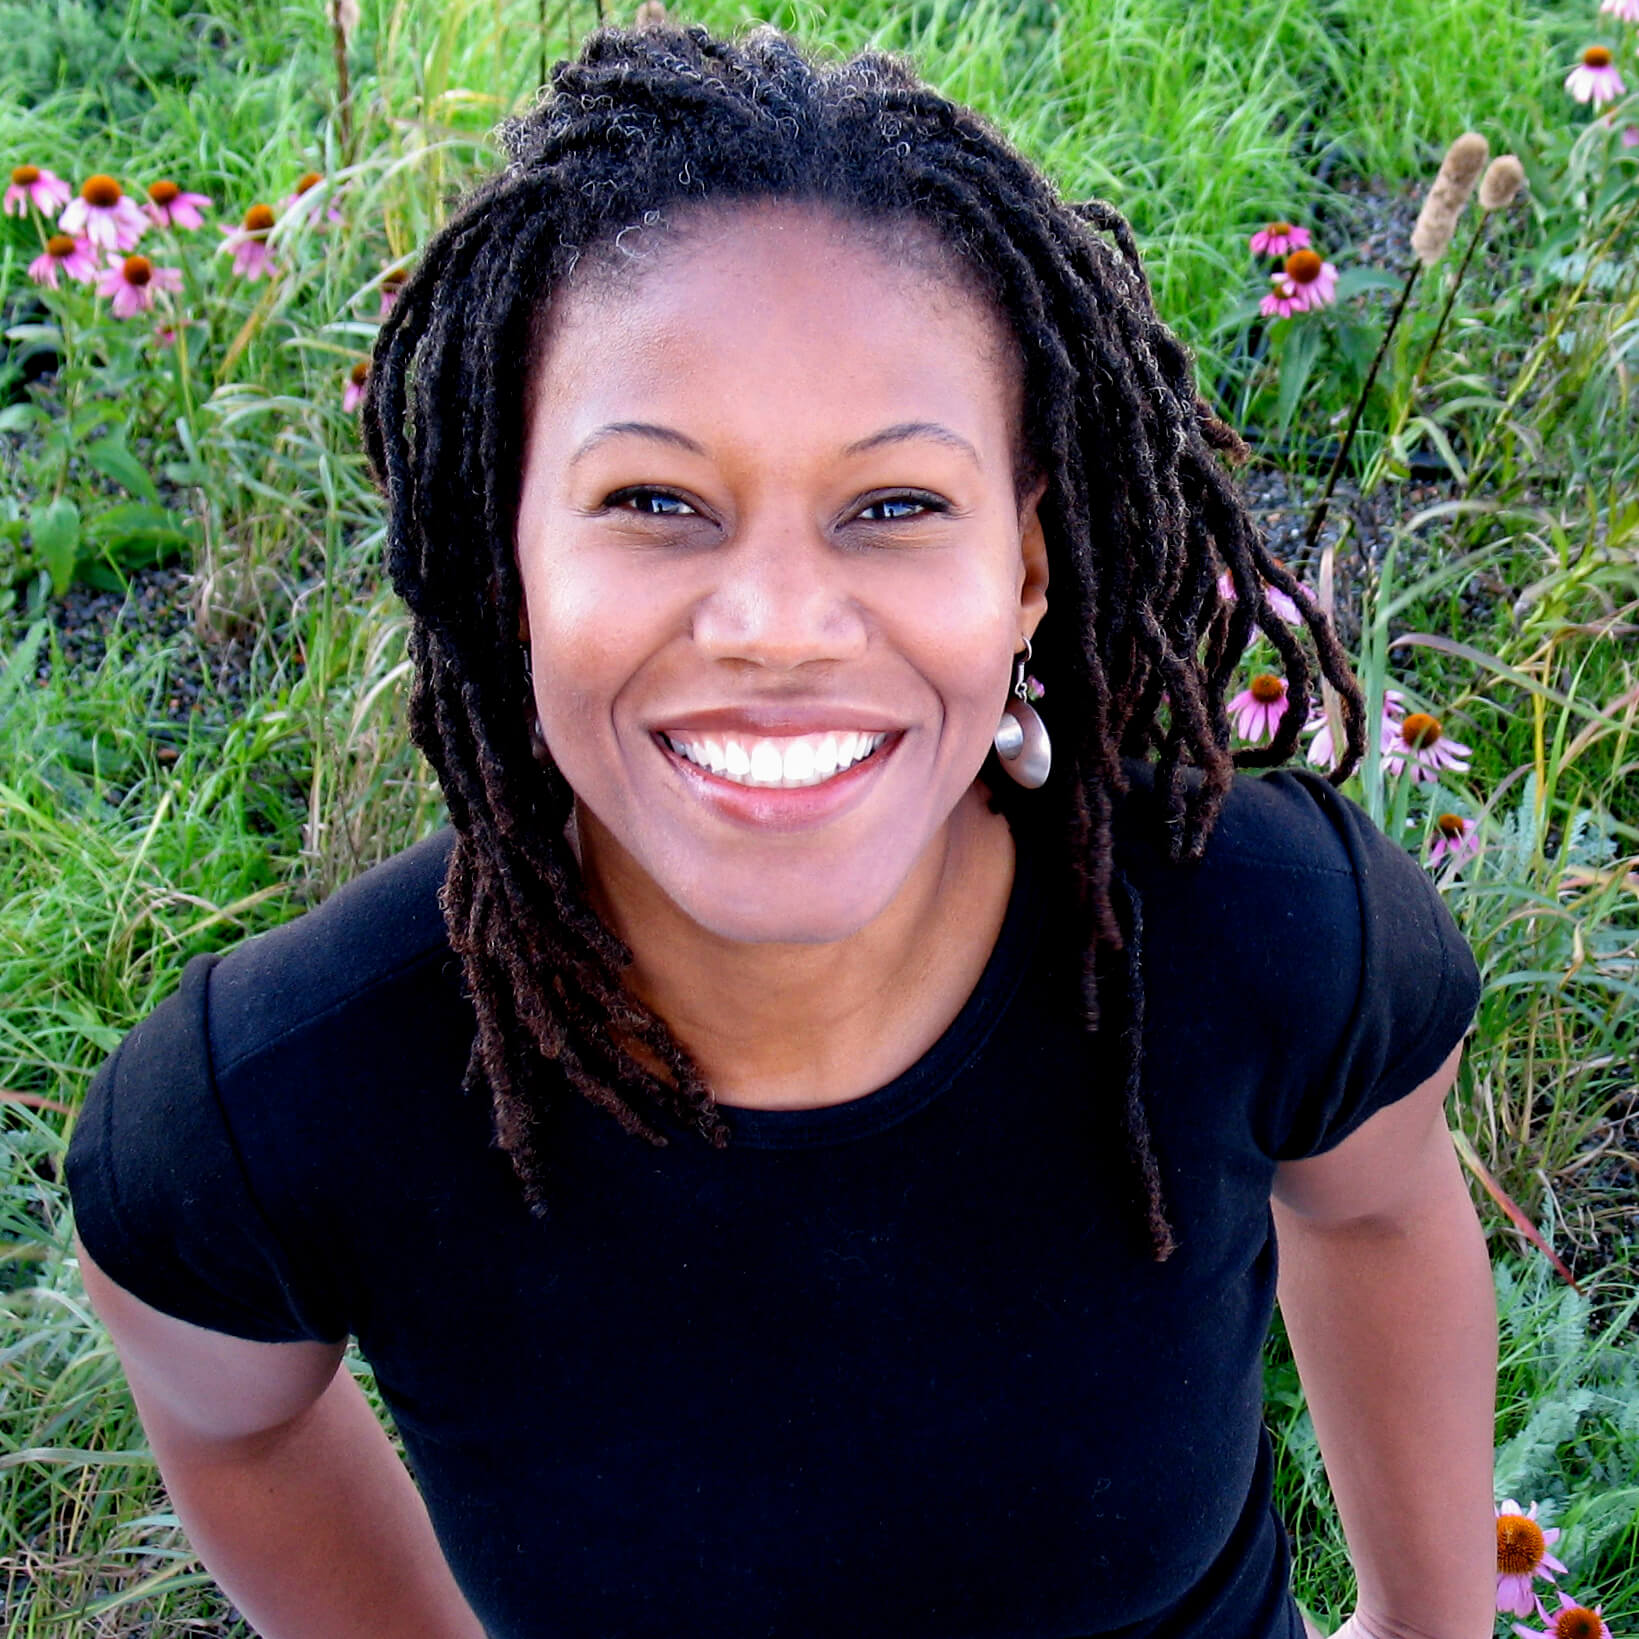 Speaker at PIRATE Live: Majora Carter